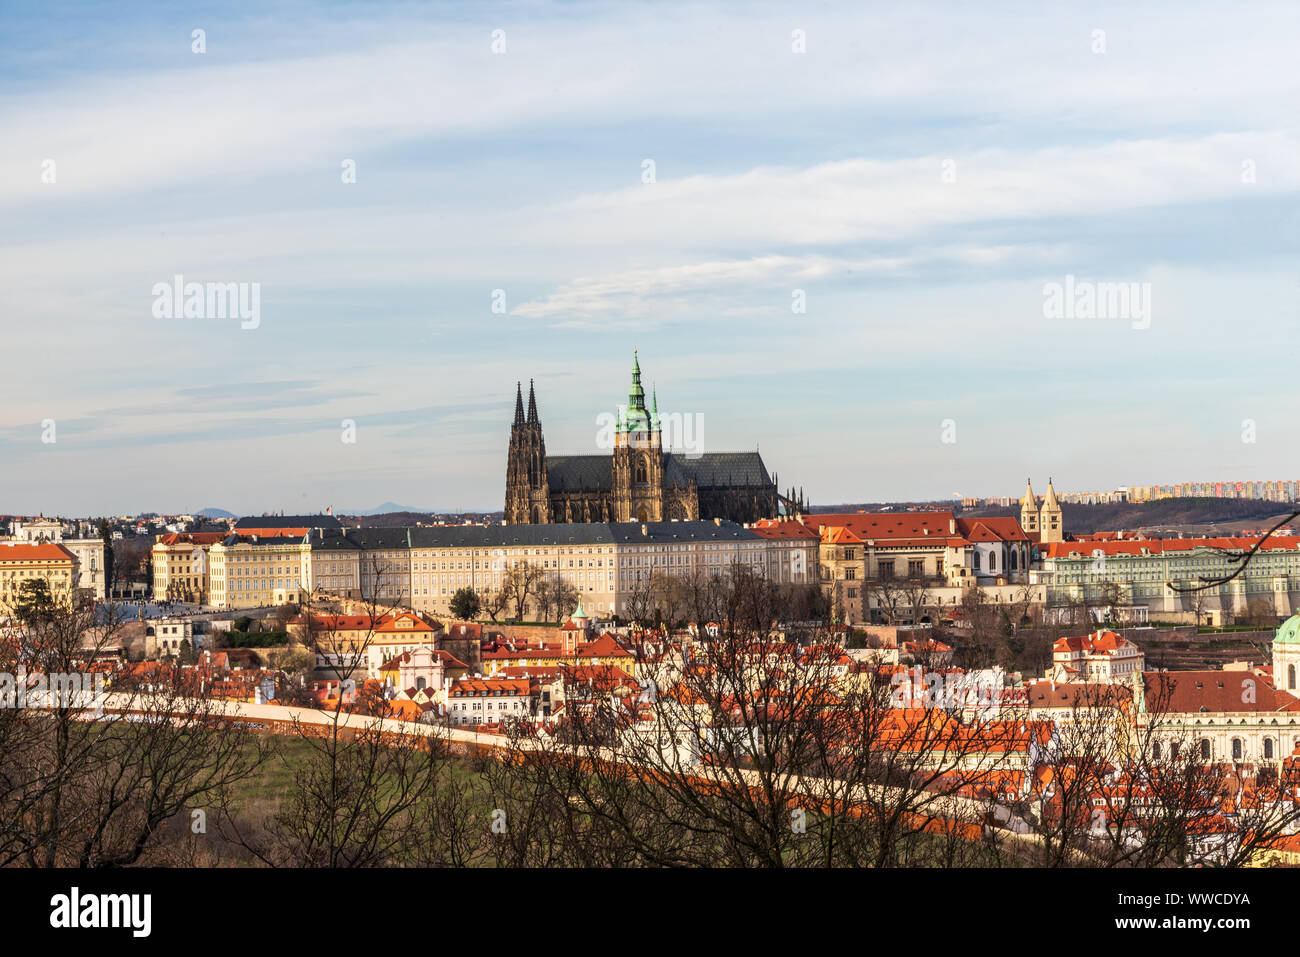 view to Prazsky hrad castle from Petrinske sady public park in Praha city in Czech republic during nice early spring day Stock Photo